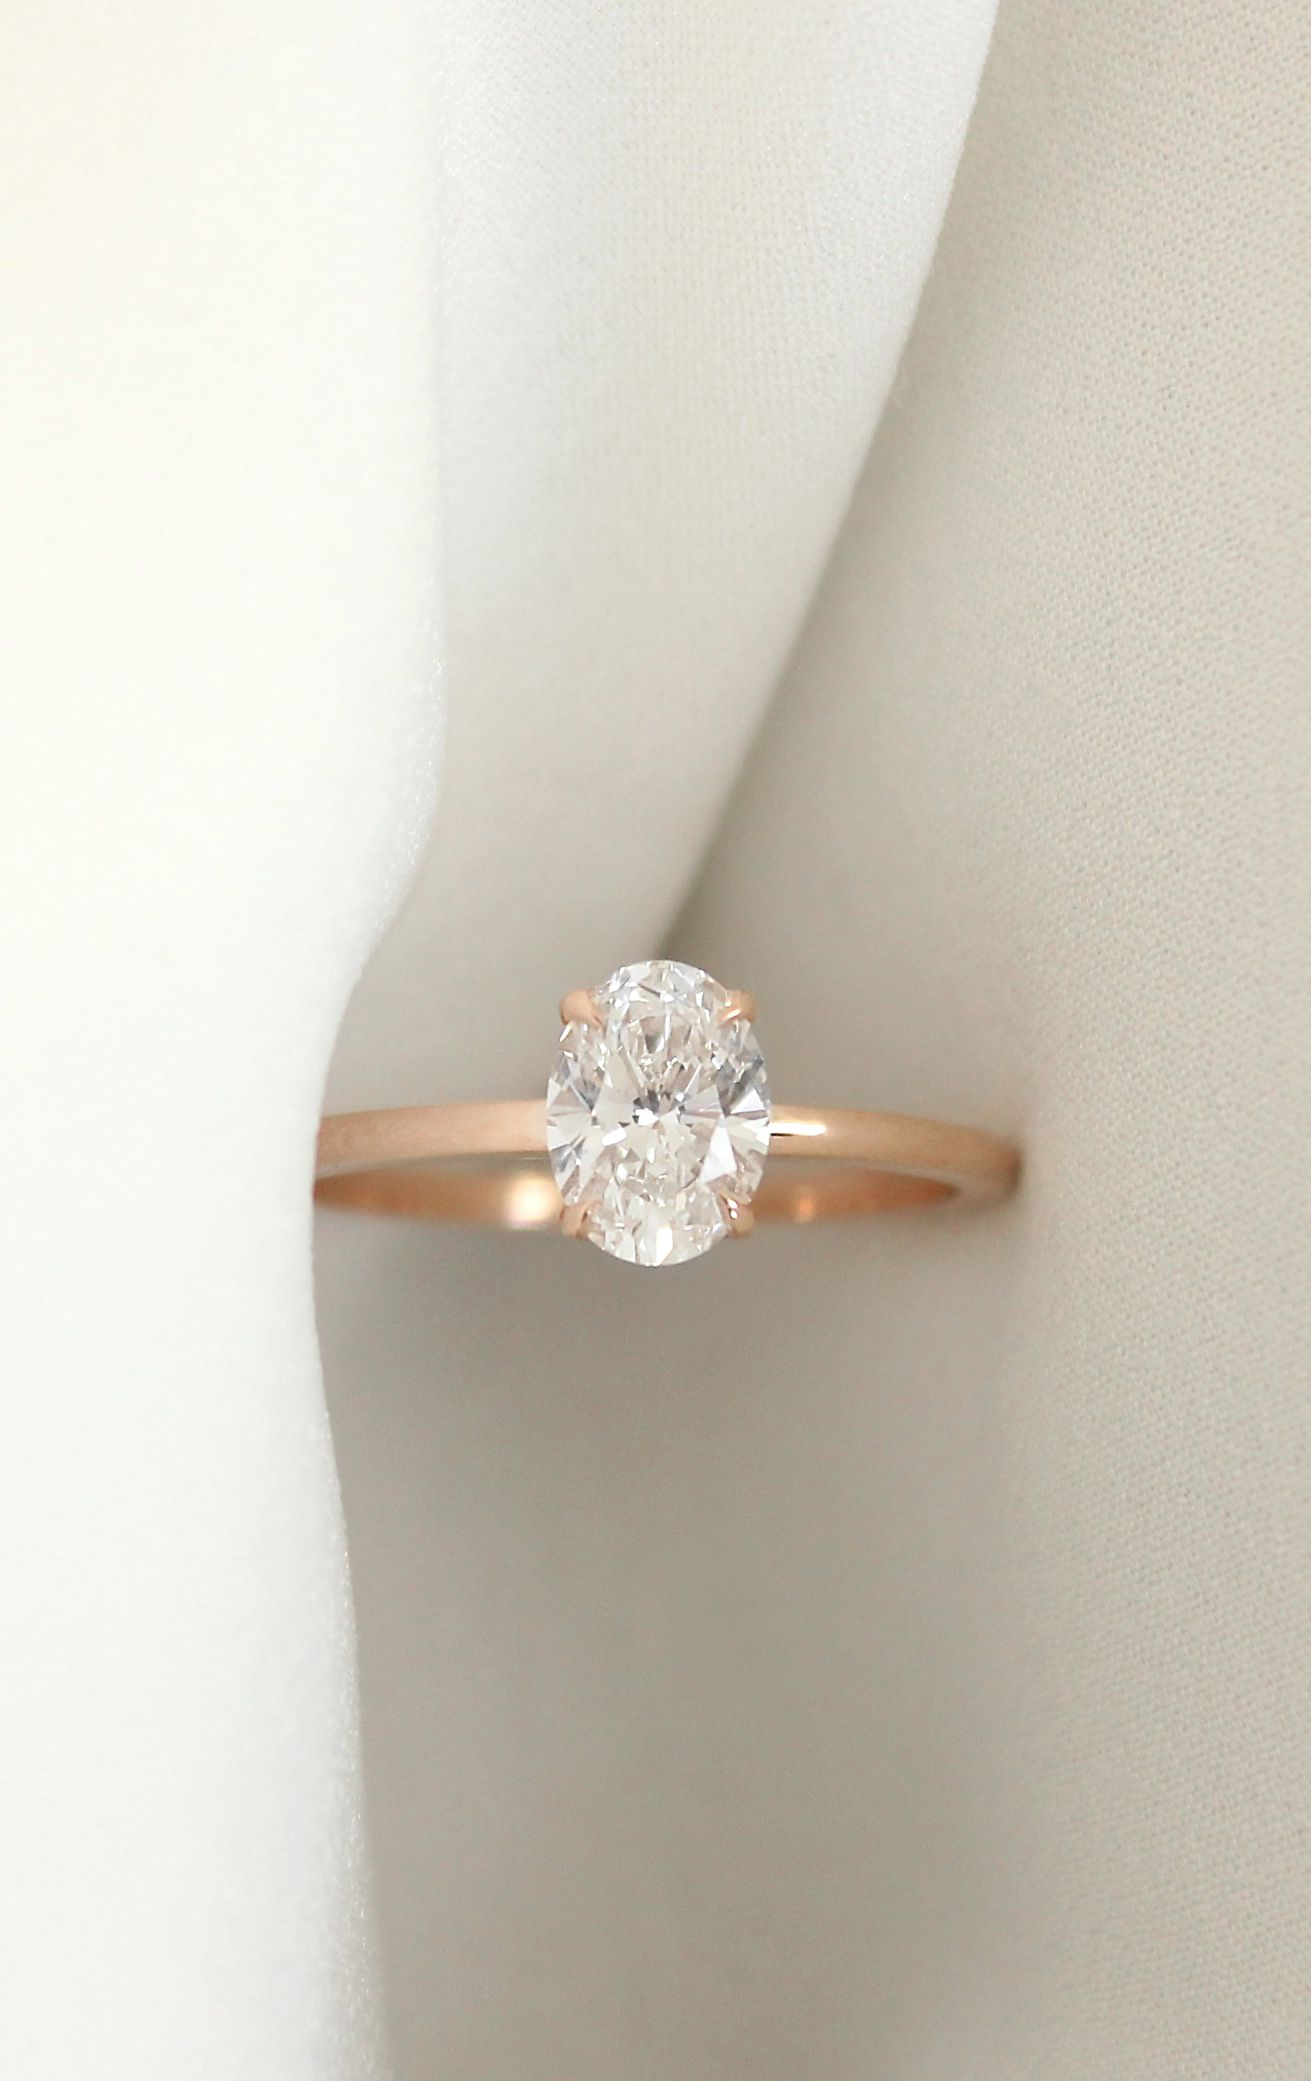 designs rings ring of white tacori picture engagement product solitaire gold diamond designer